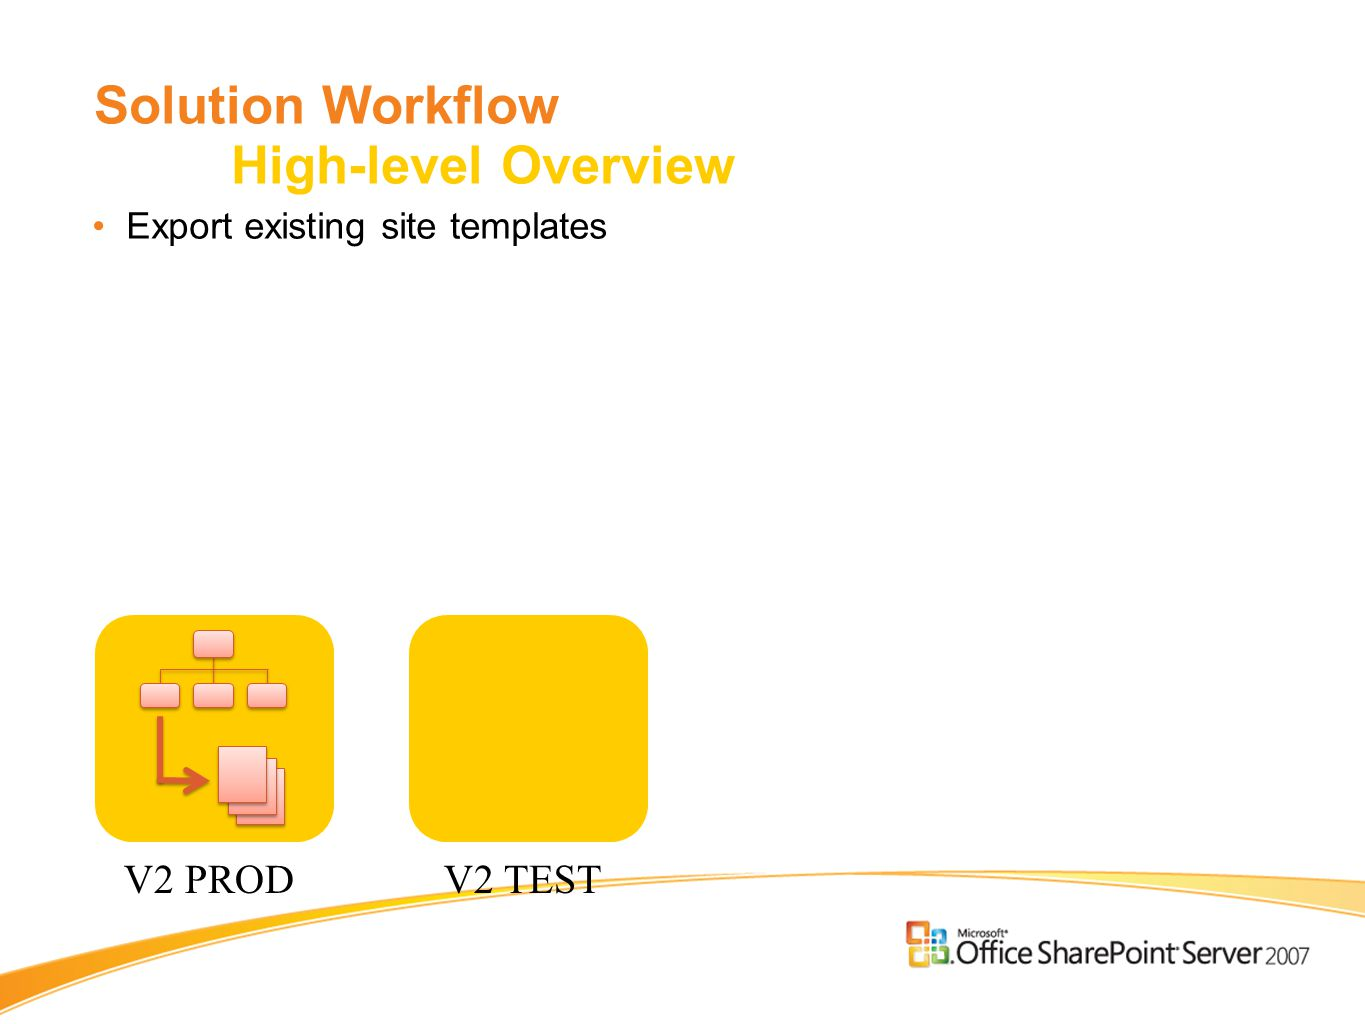 Solution Workflow High-level Overview Export existing site templates V2 PRODV2 TEST